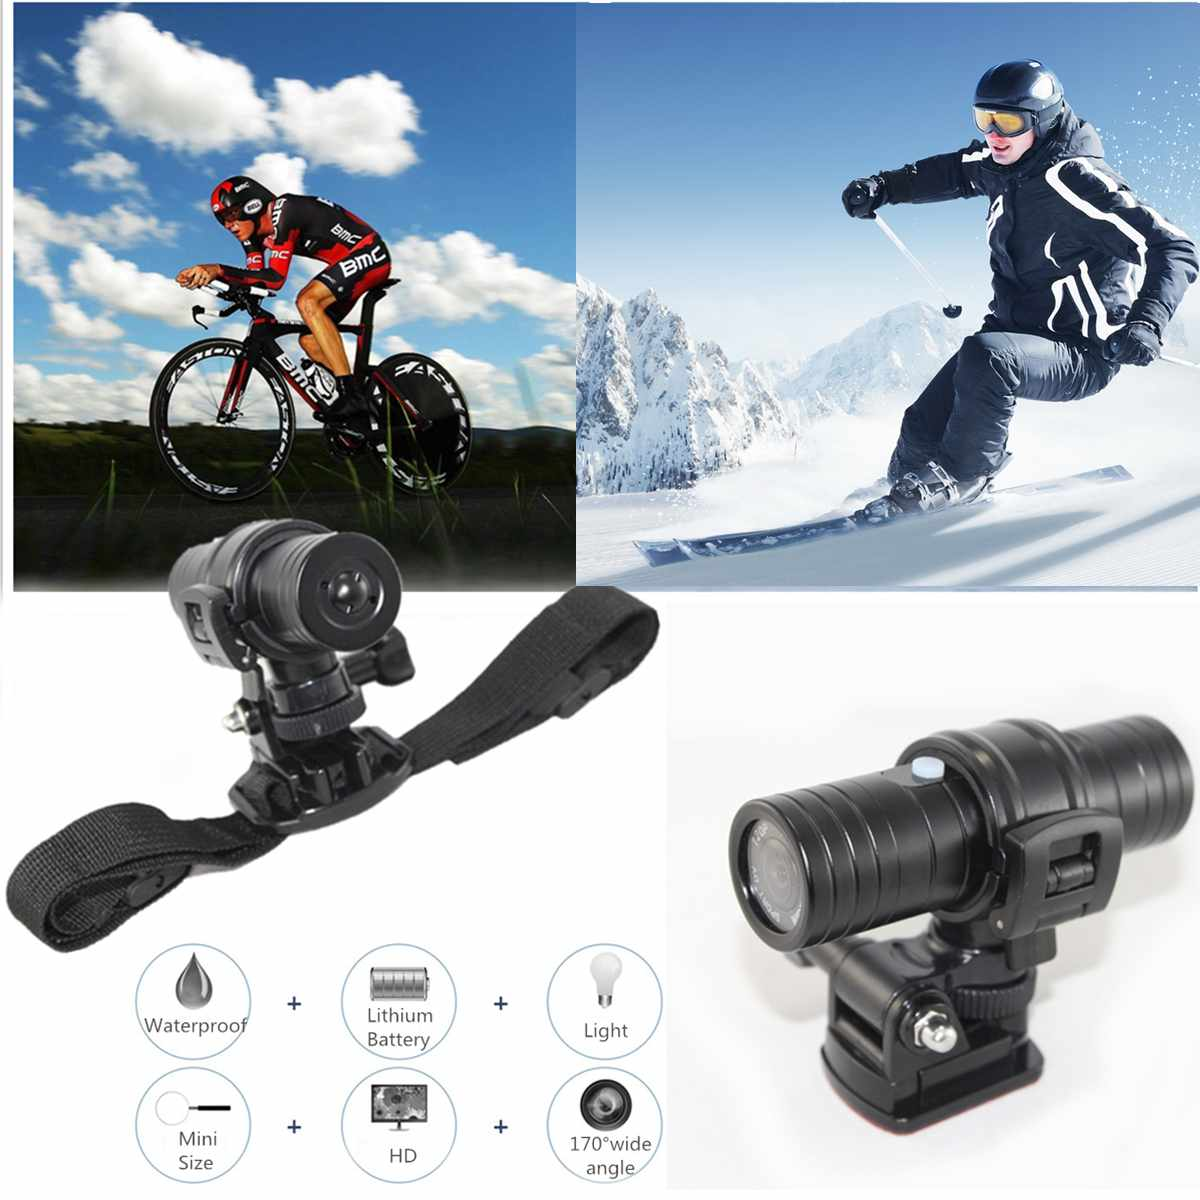 1080P Waterproof Sport Camera Helmet Motorcycl Cycling DVR Video Recorder Drift Ghost Mini Outdoor Sport DV With Accessories Set1080P Waterproof Sport Camera Helmet Motorcycl Cycling DVR Video Recorder Drift Ghost Mini Outdoor Sport DV With Accessories Set